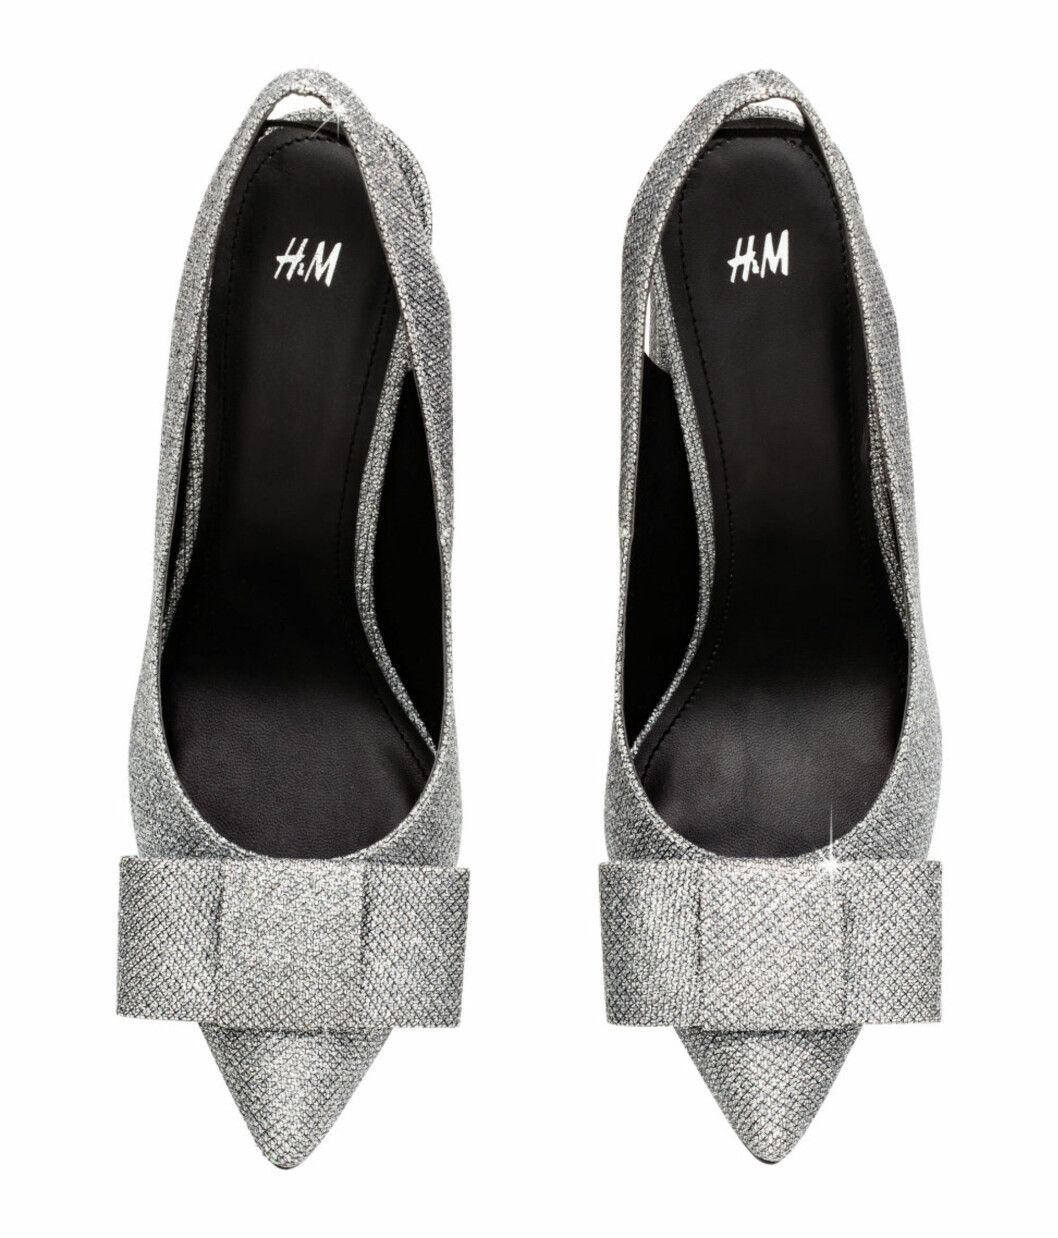 Pumps fra H&M | kr 299 | http://www.hm.com/no/product/56738?article=56738-A